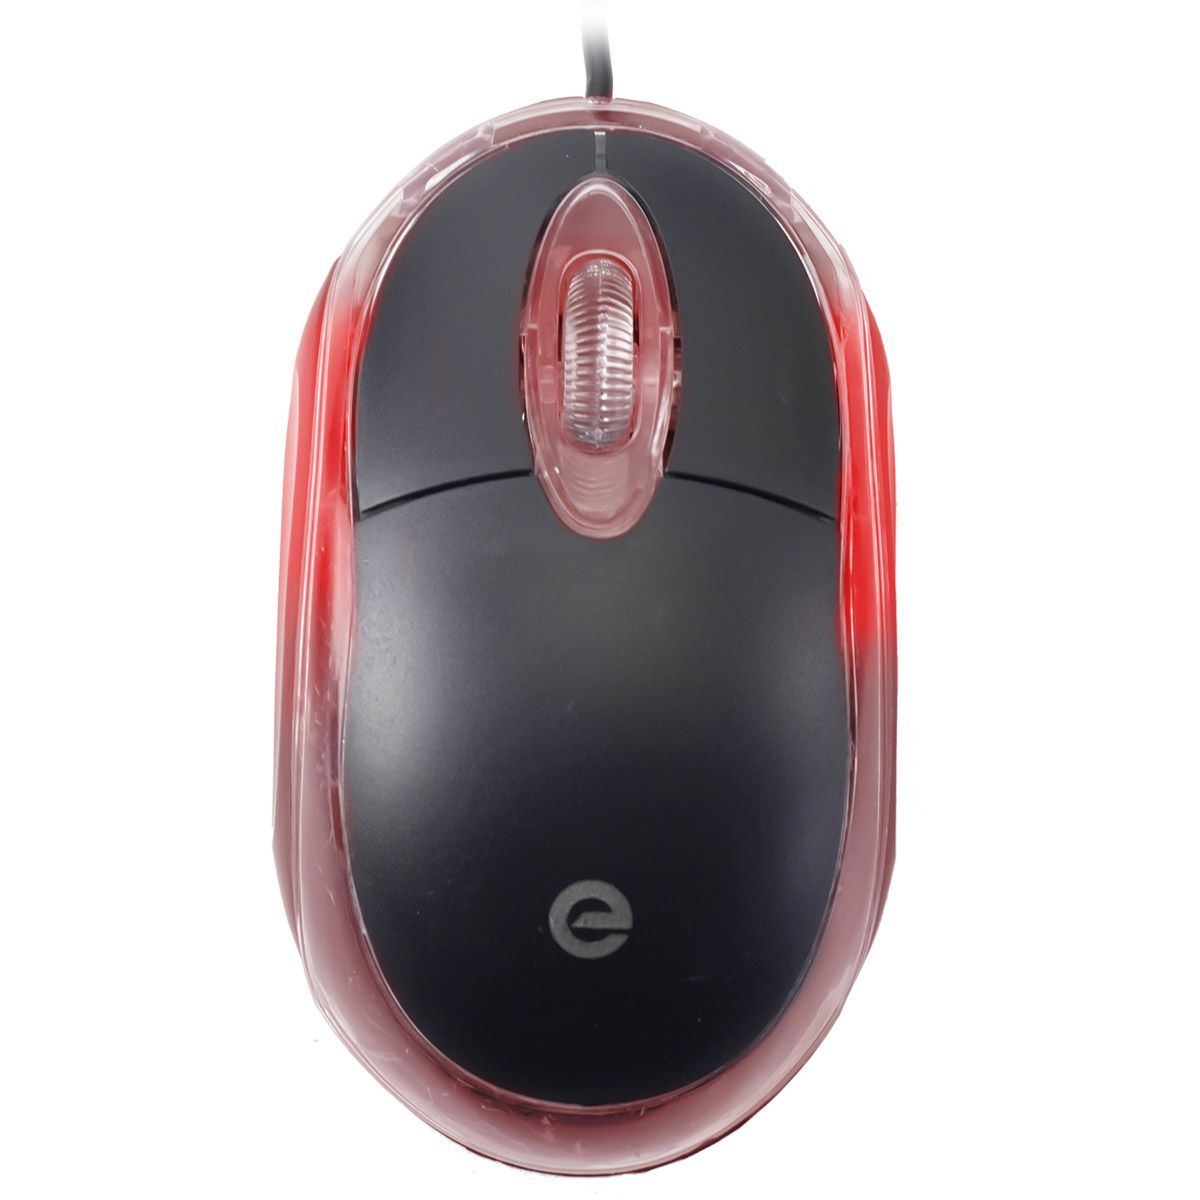 KIT 5x Mouse Óptico USB Exbom MS-9 com Led